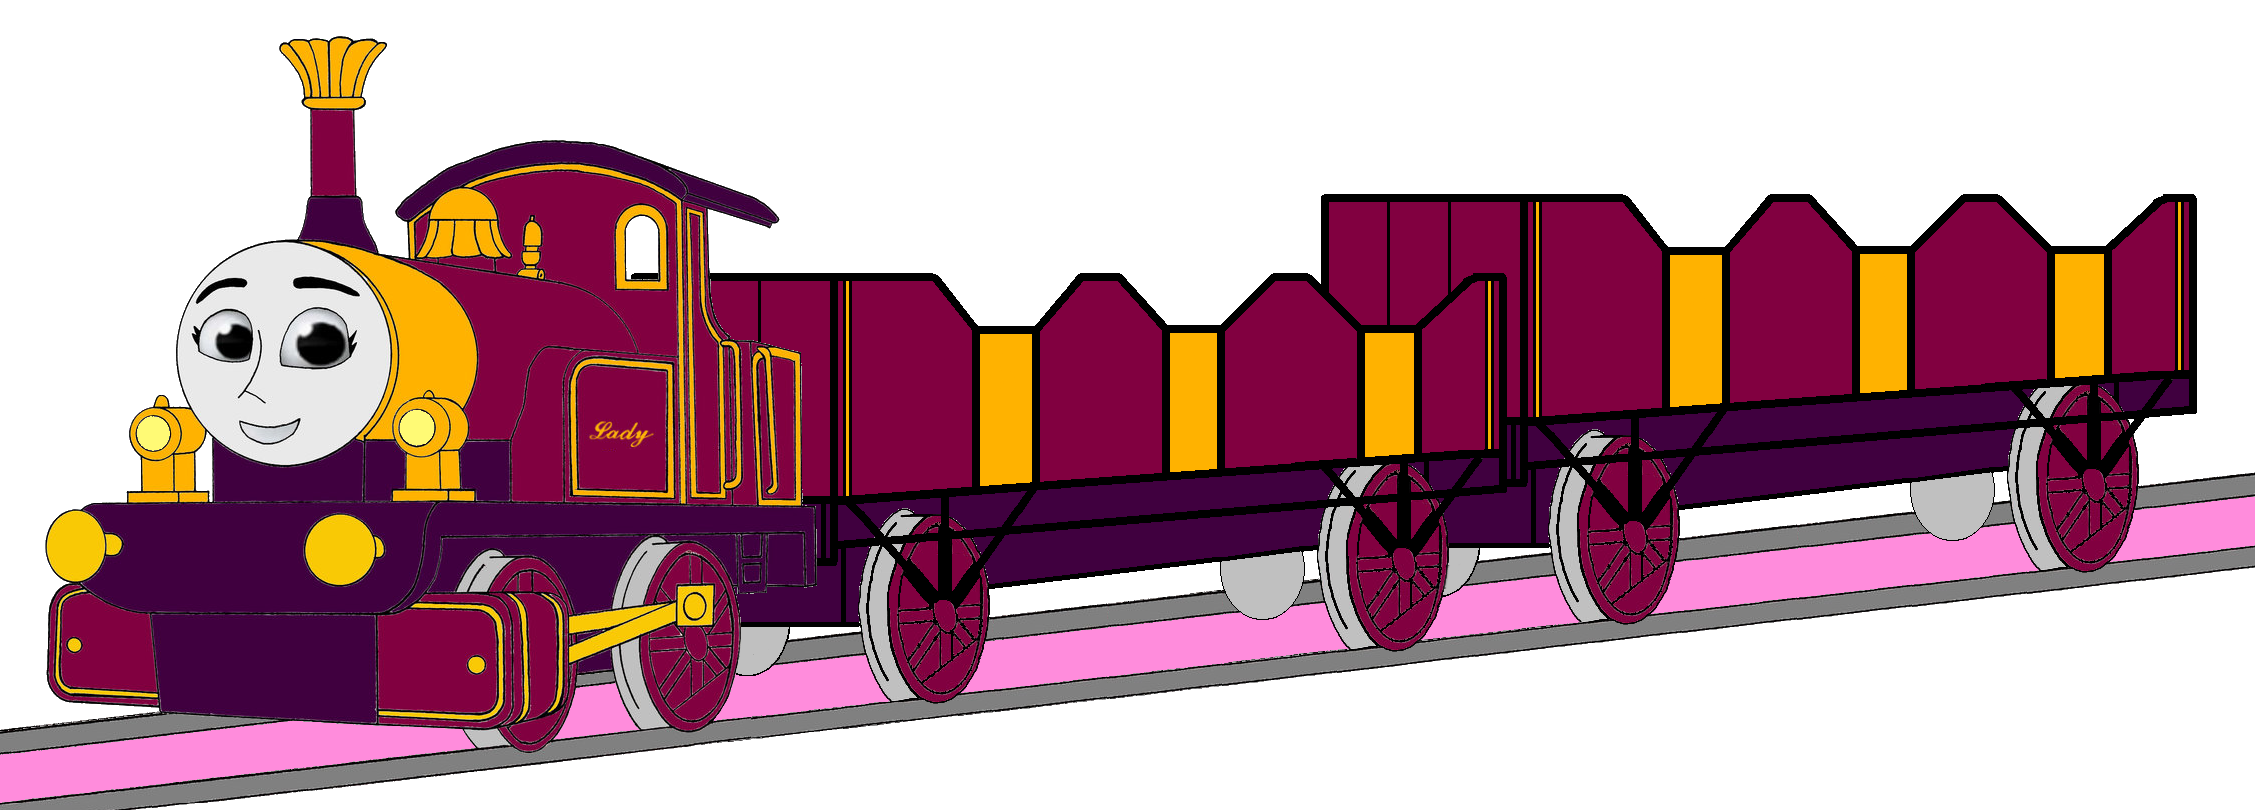 image download The railway series images. Carriage clipart wallpaper.